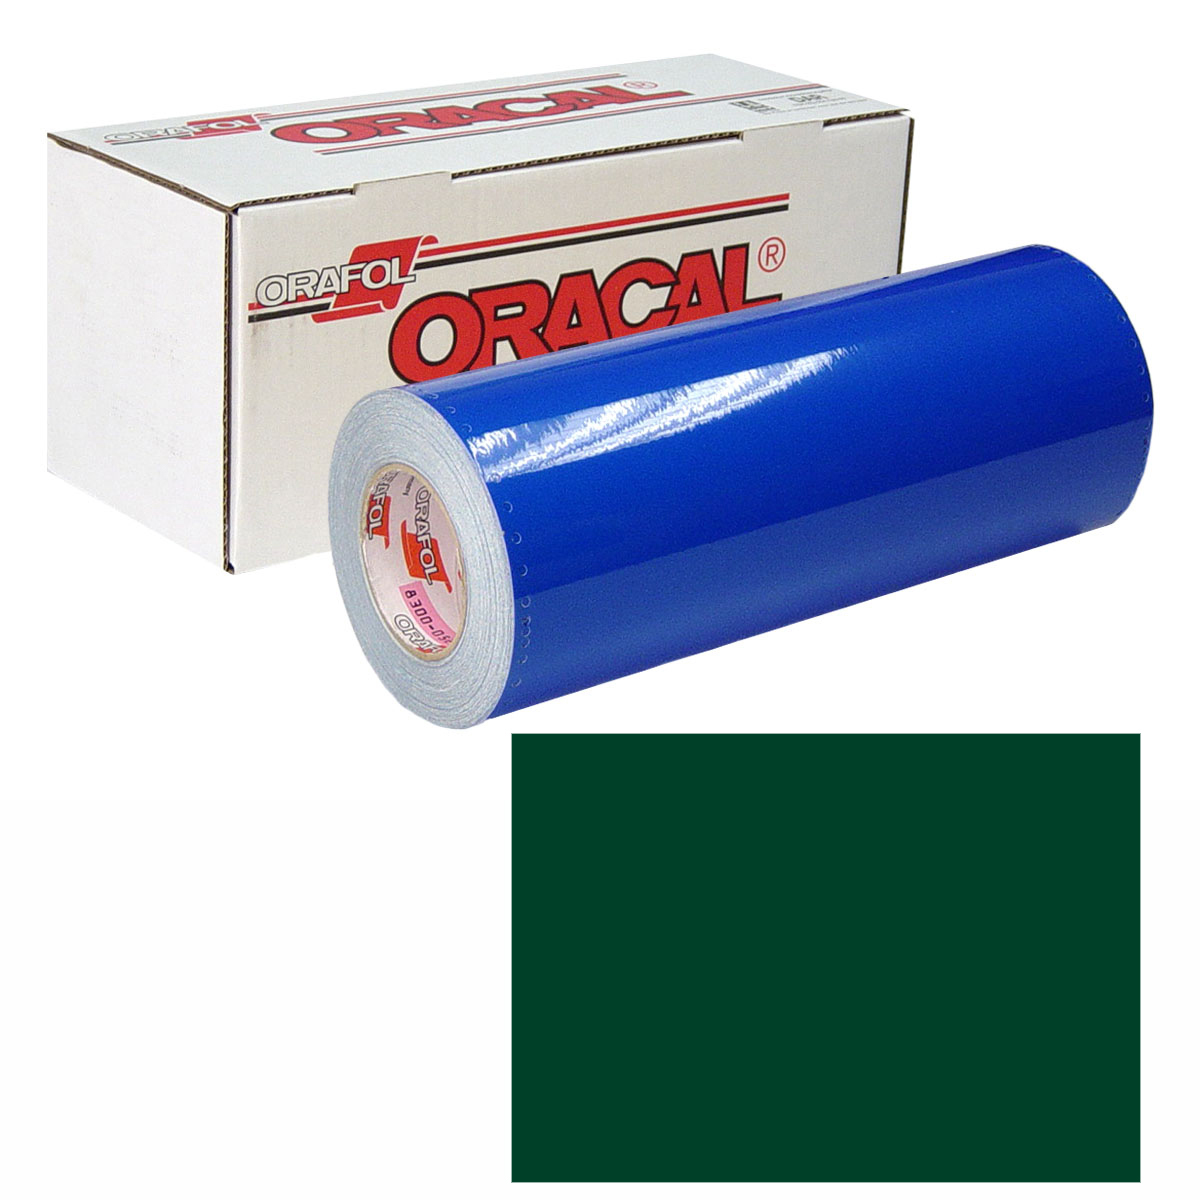 ORACAL 631 Unp 48in X 10yd 060 Dark Green